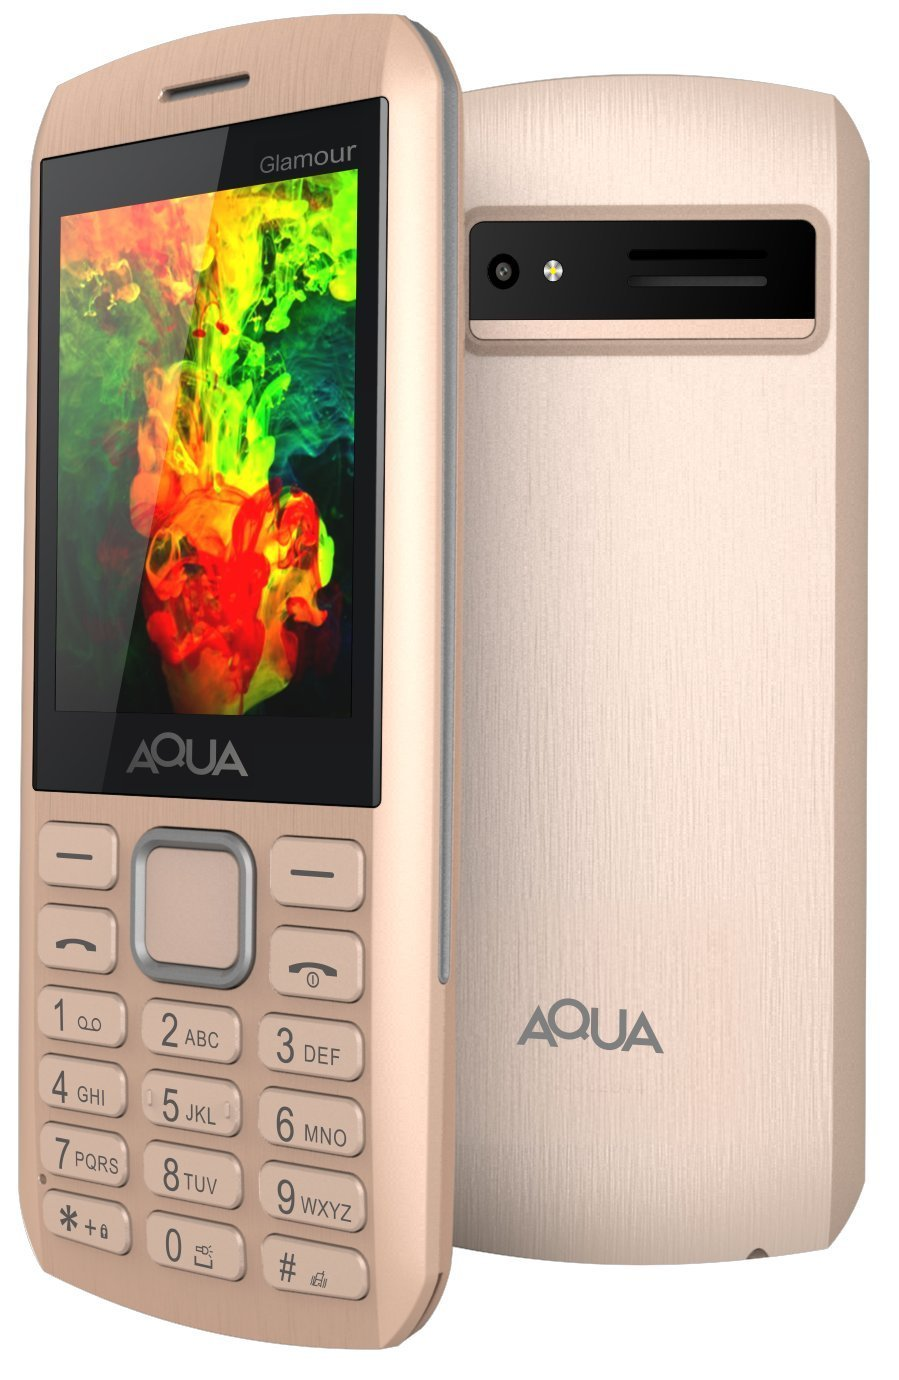 Aqua Glamour Gorgeous Dual Sim 2.4 inch Big Screen 1500 mAh Powerful Battery Mobile Phone